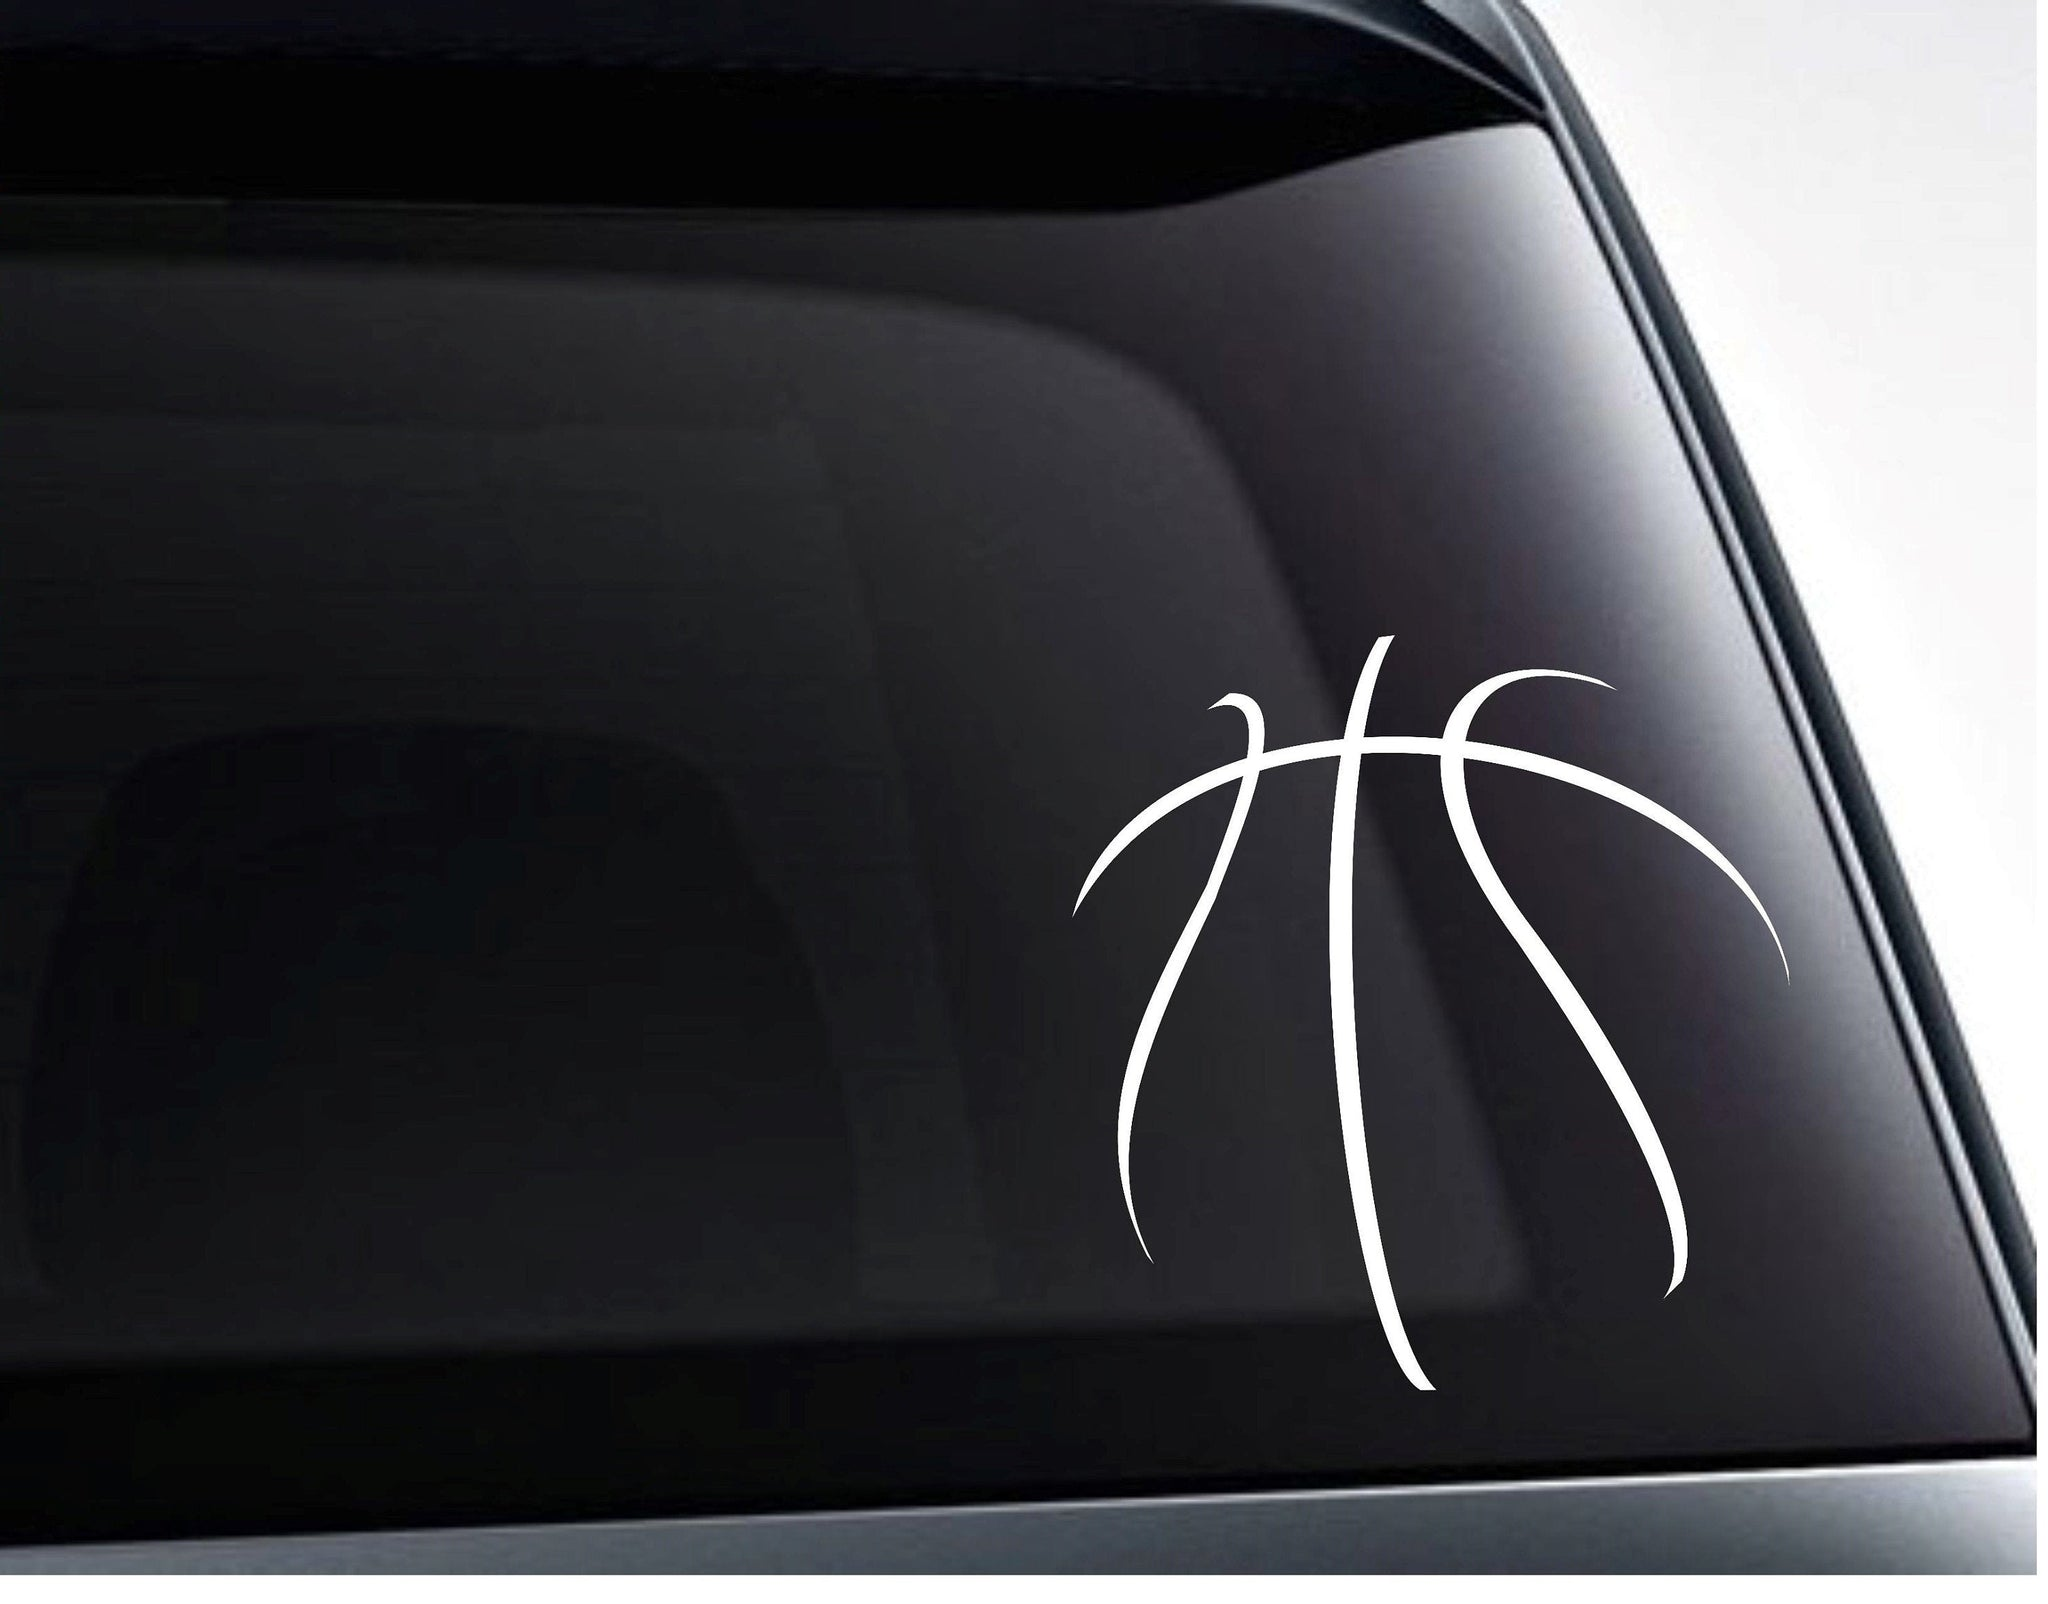 Basketball Seams Design Vinyl Decal Sticker